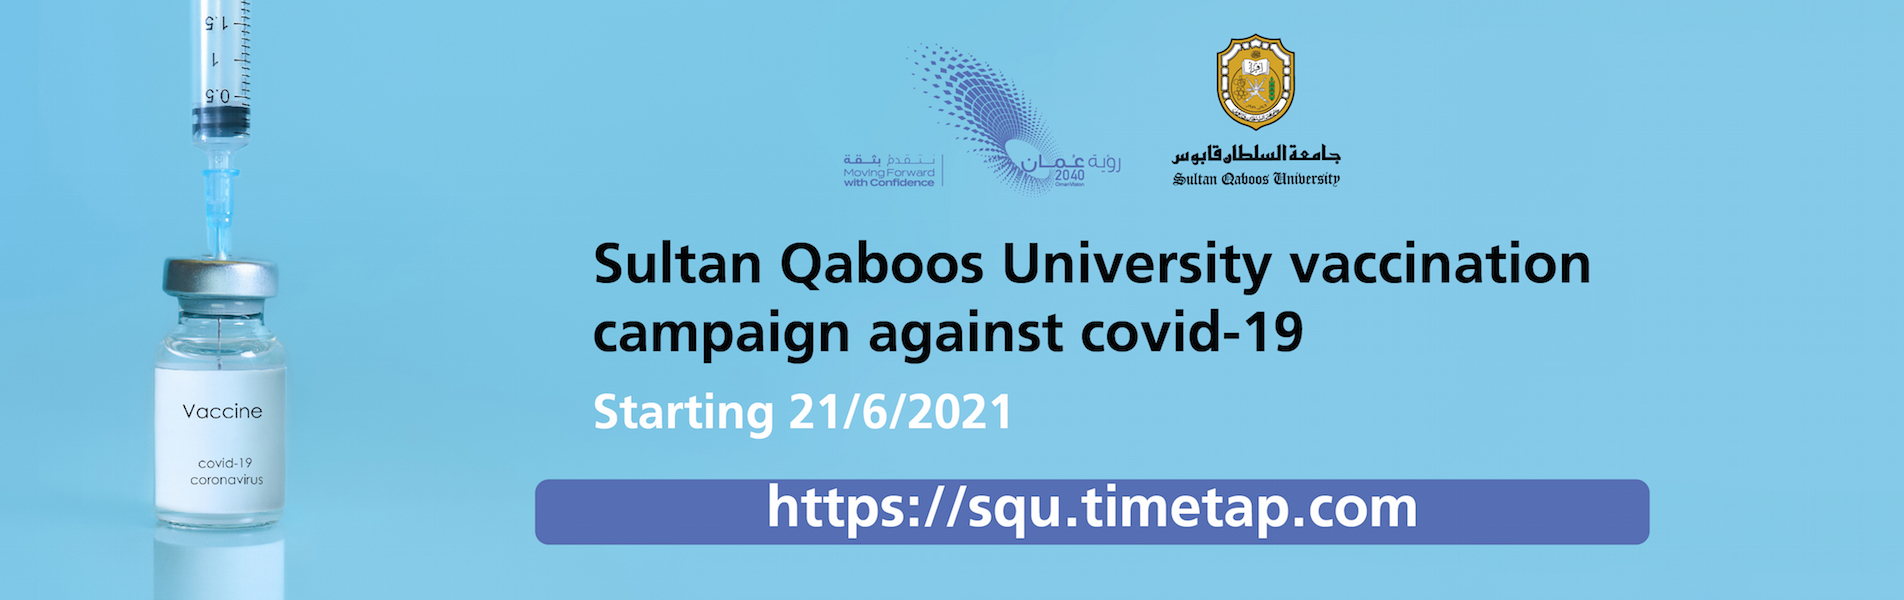 Vaccination Campaign against Covid-19